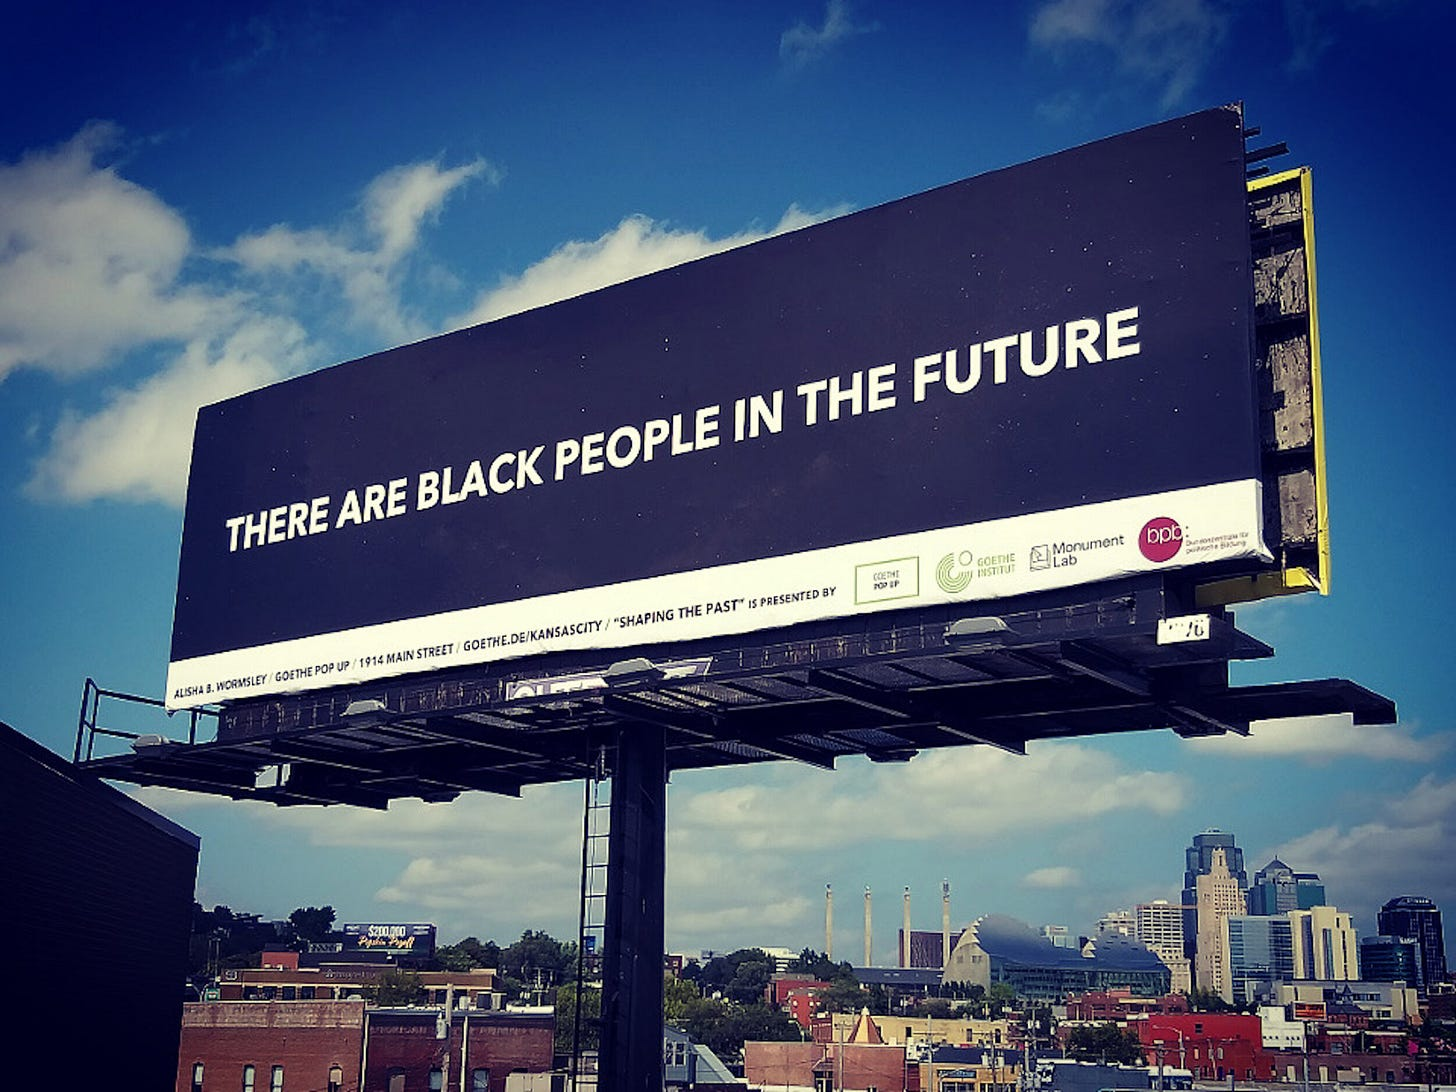 """Artist Alisha Wormsley first posted the words """"There are Black people in the future"""" on a billboard in Pittsburgh in 2017. Since then, other cities have featured the same message."""